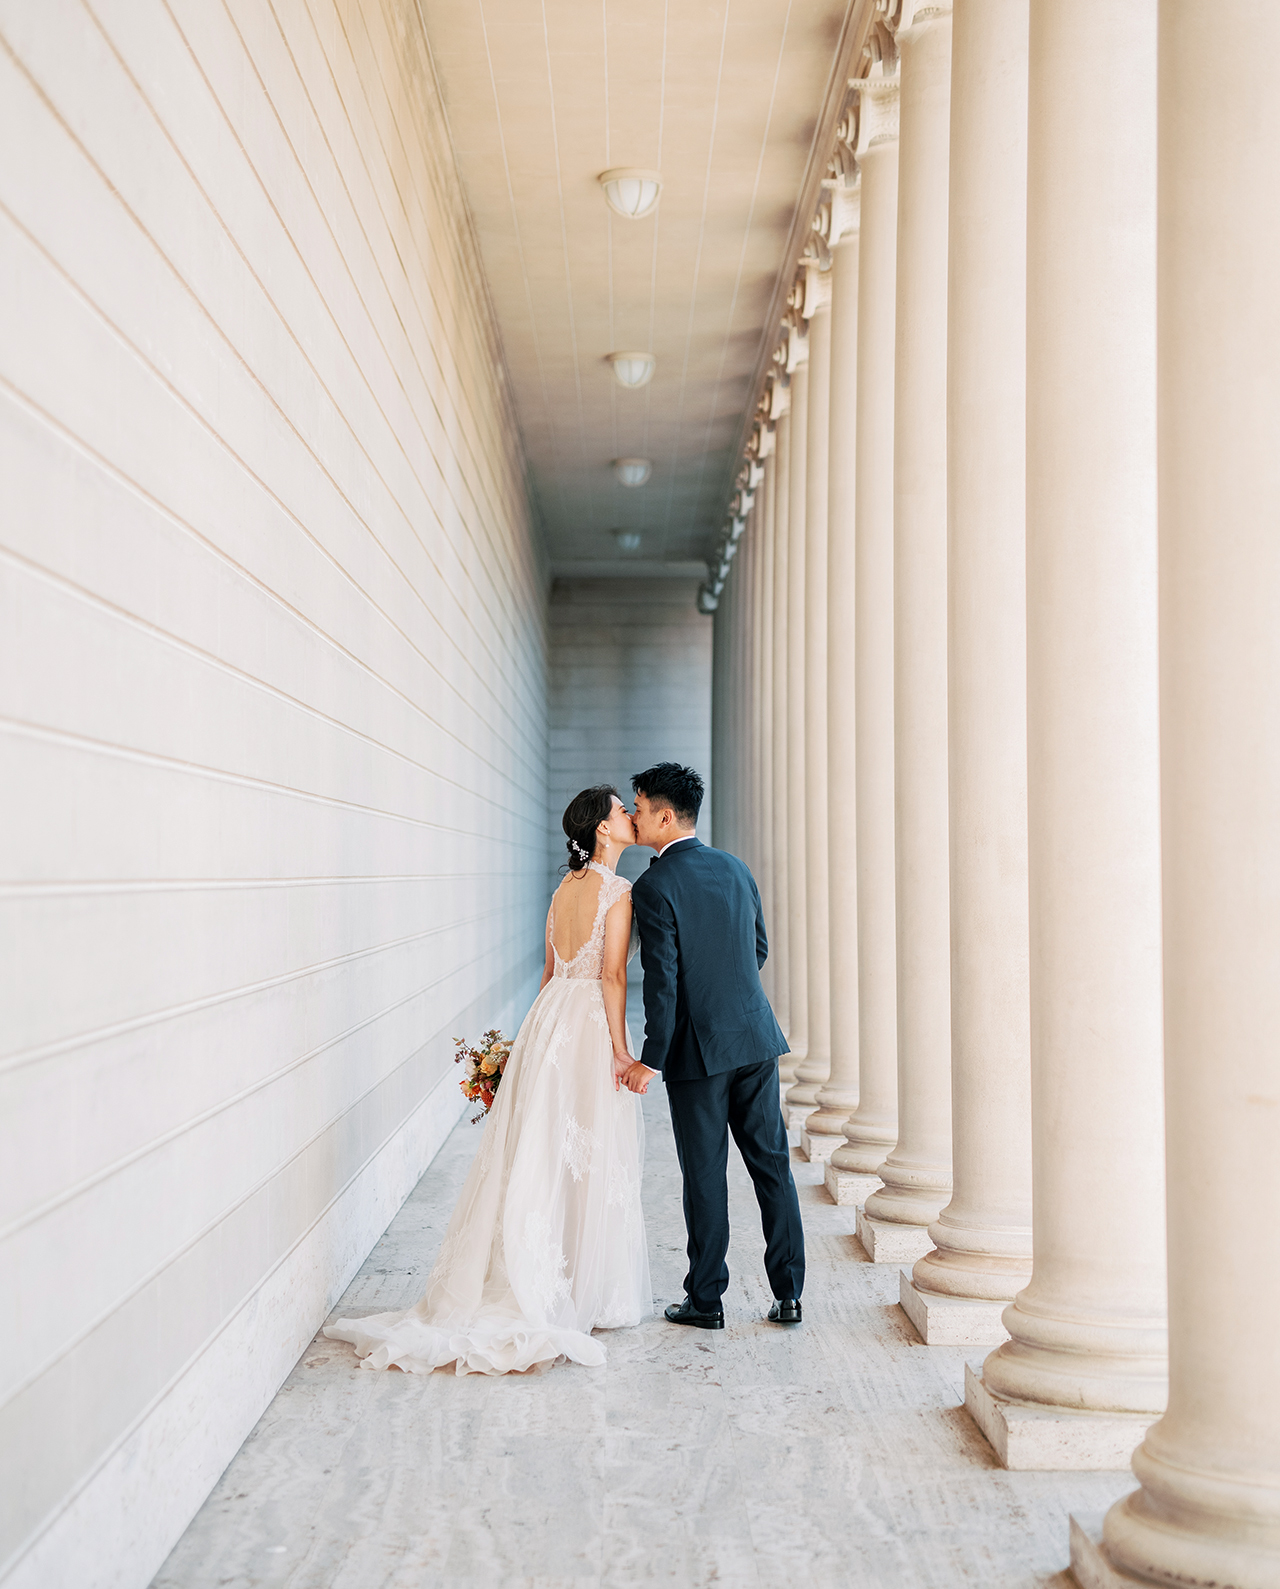 wedding couple kiss near museum pillars